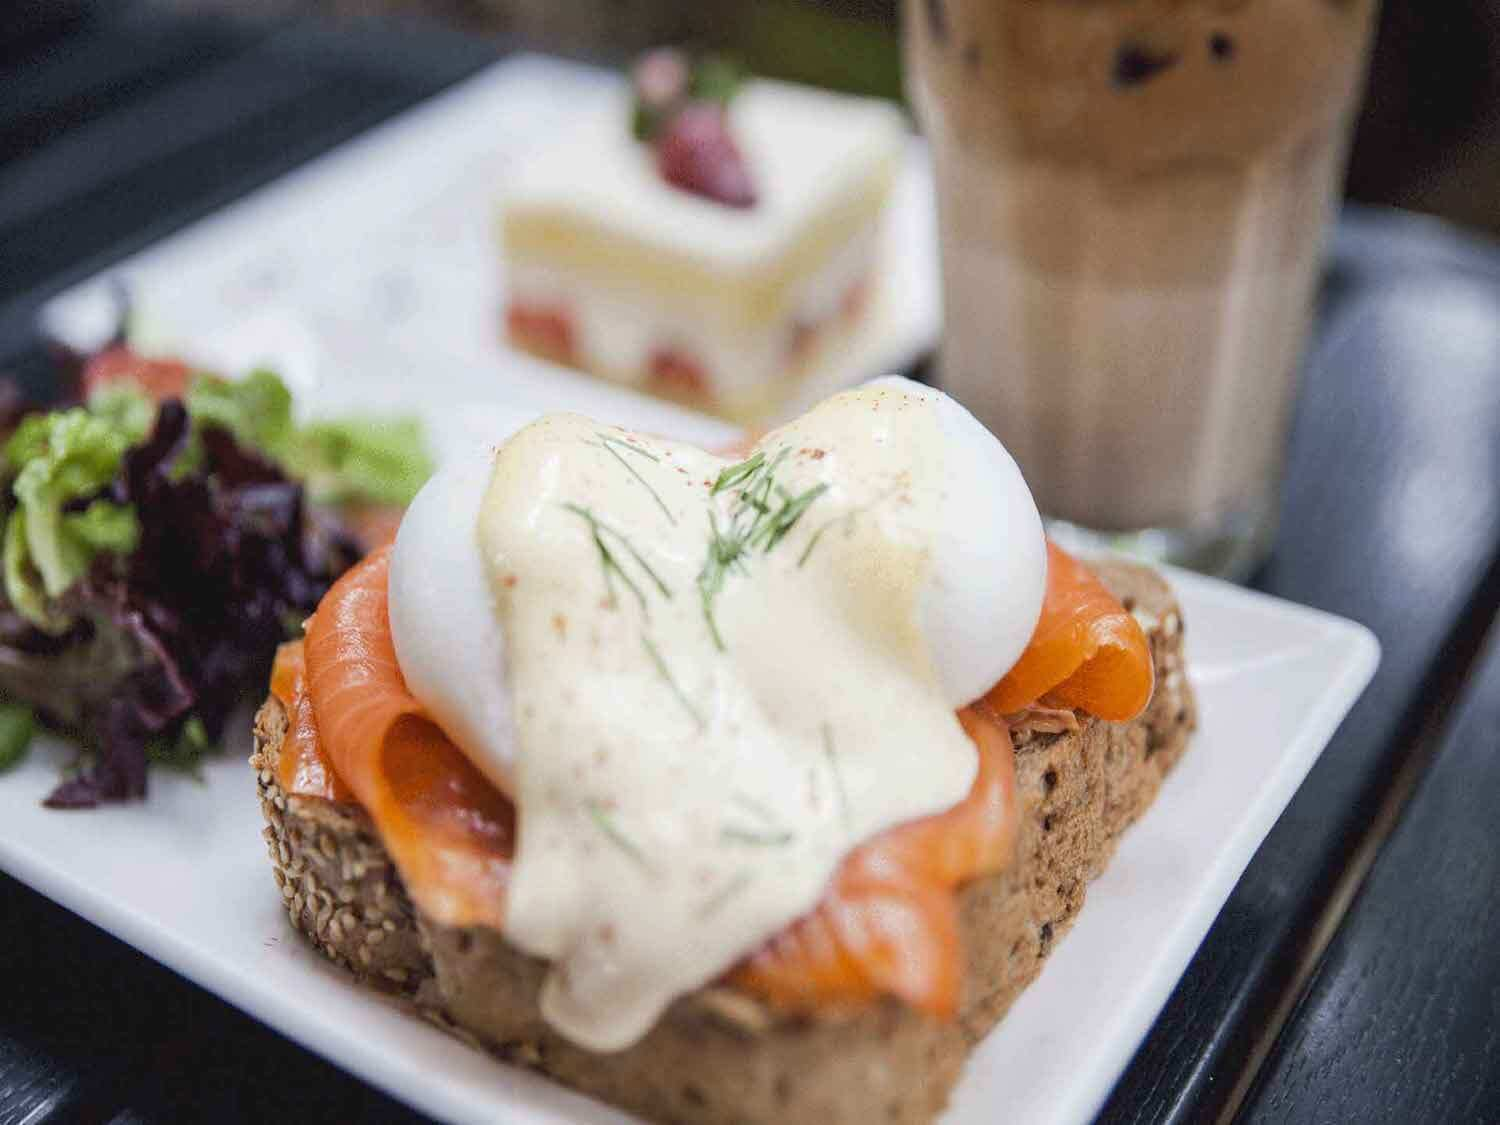 Dog-friendly Cafe - Chock Full of Beans | Vanillapup